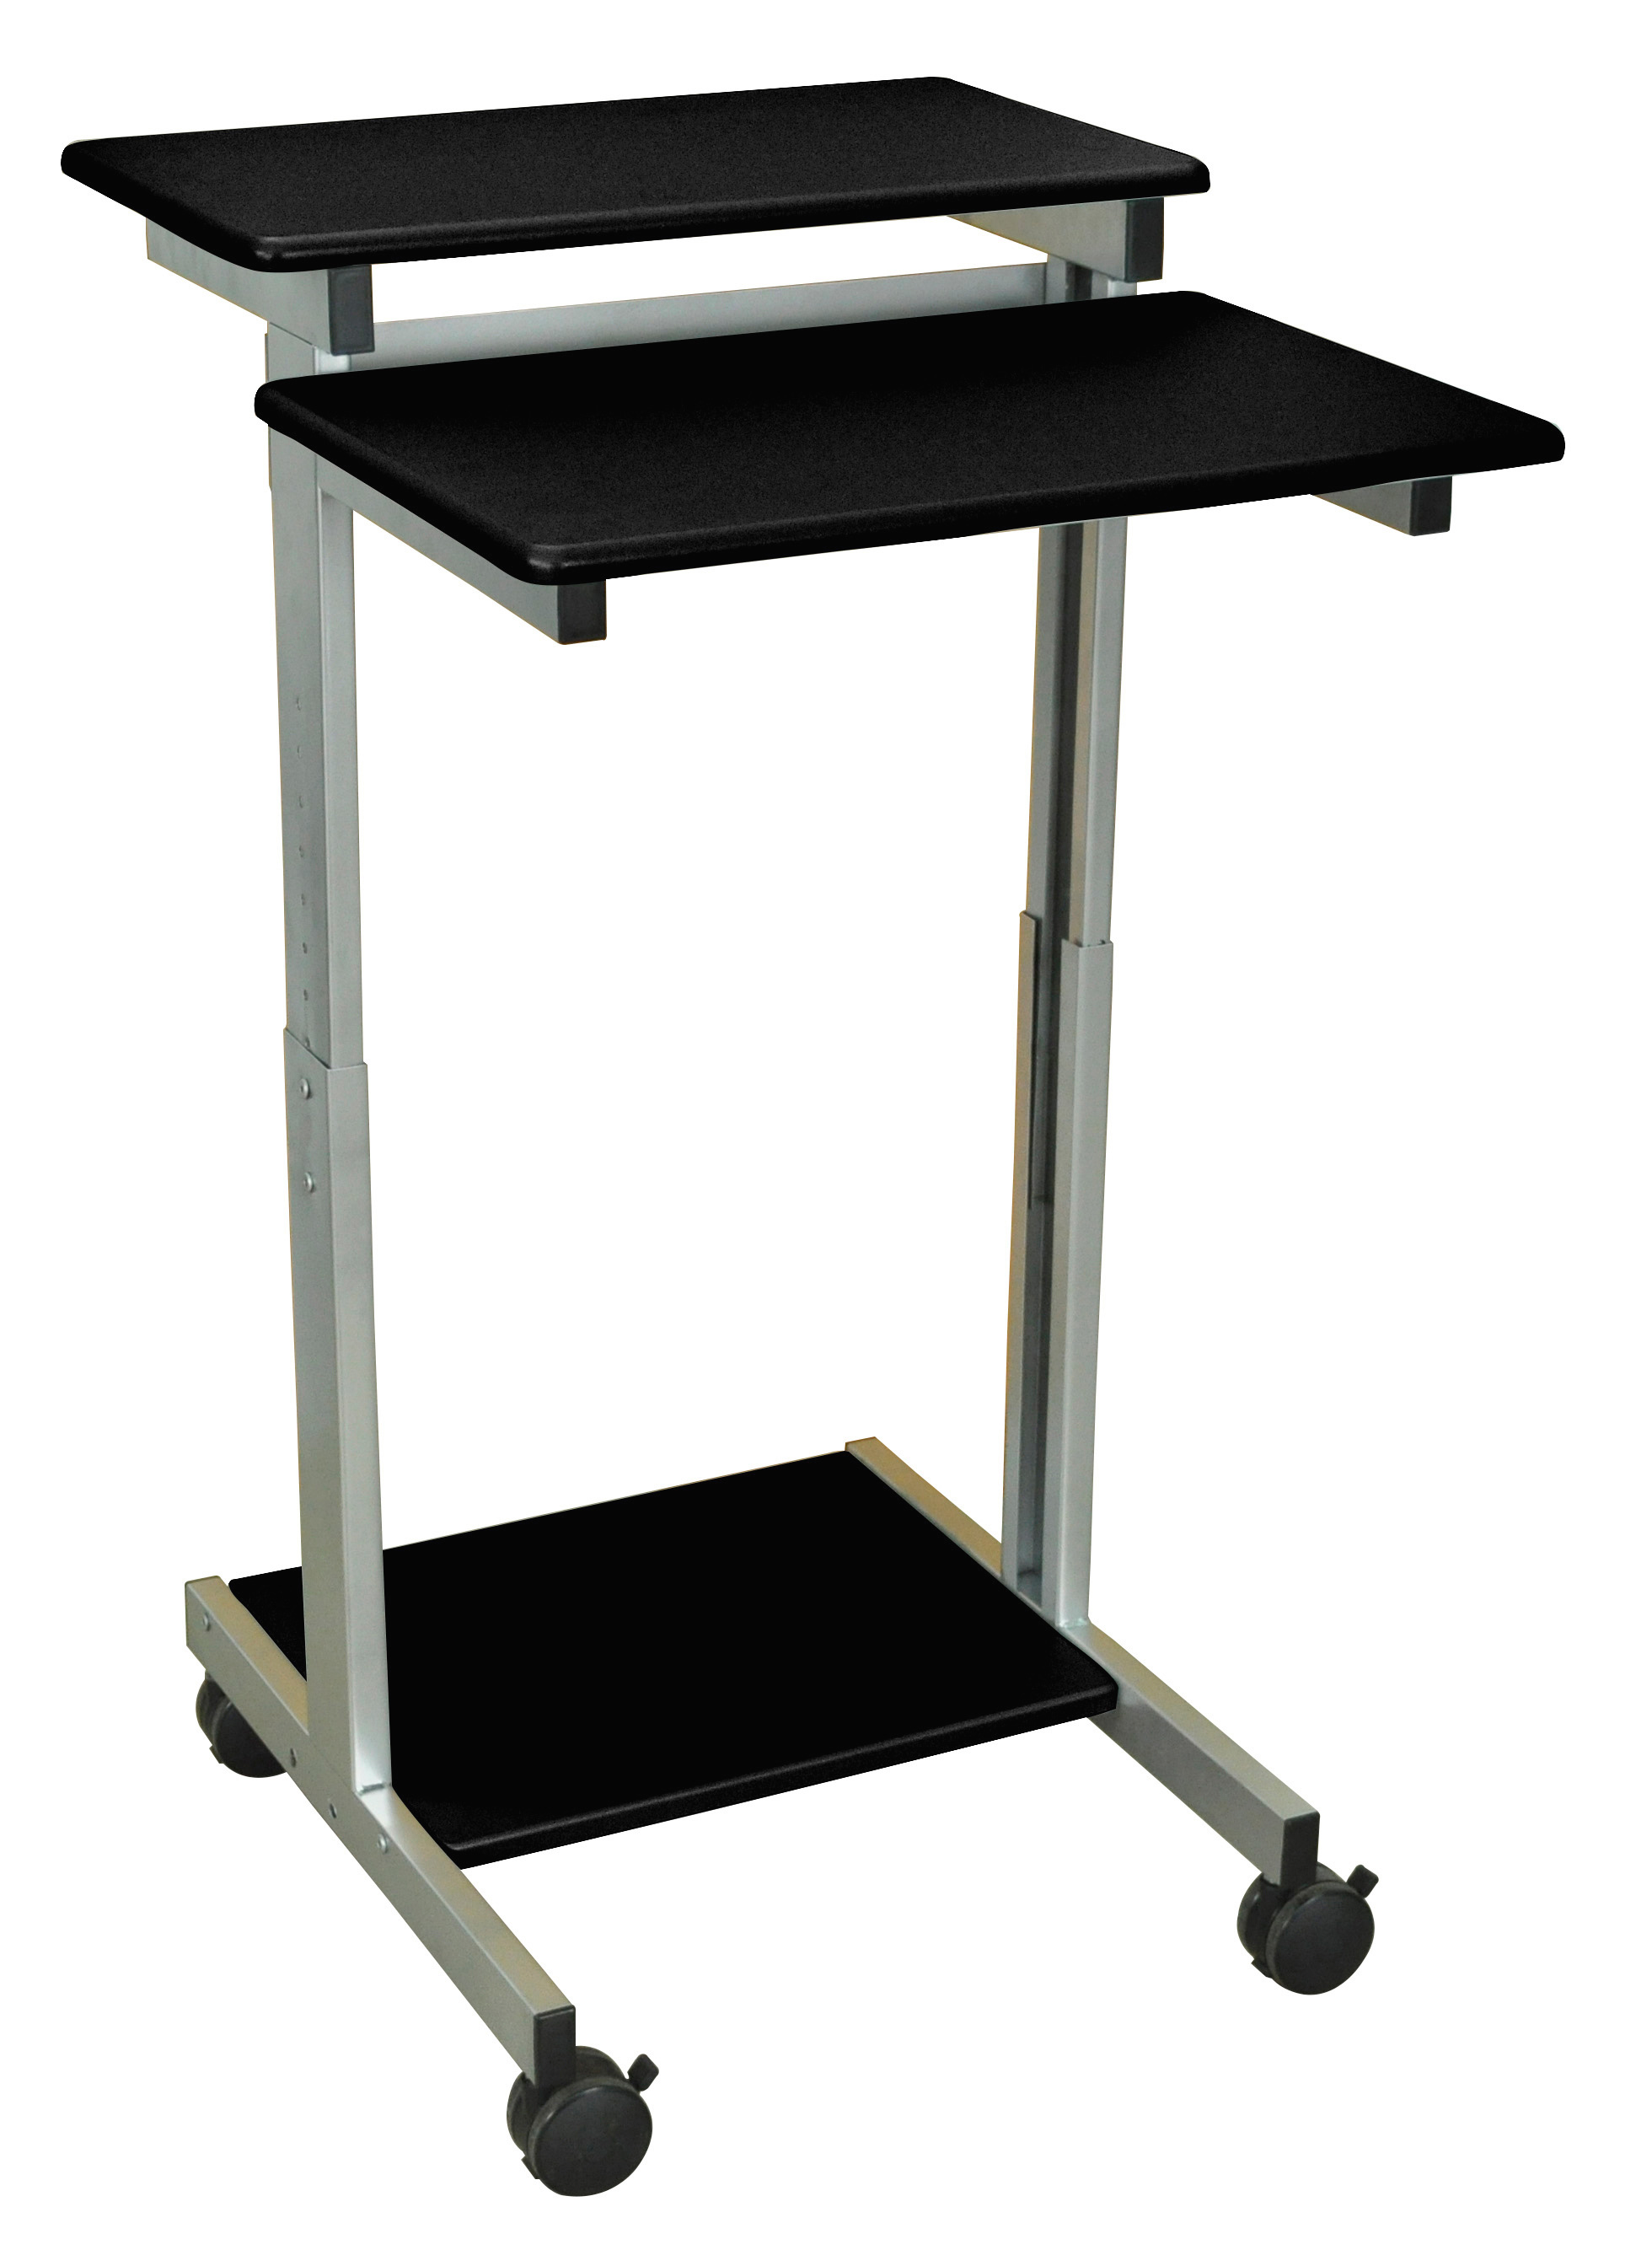 luxor standup 24 b adjustable height stand up workstation. Black Bedroom Furniture Sets. Home Design Ideas